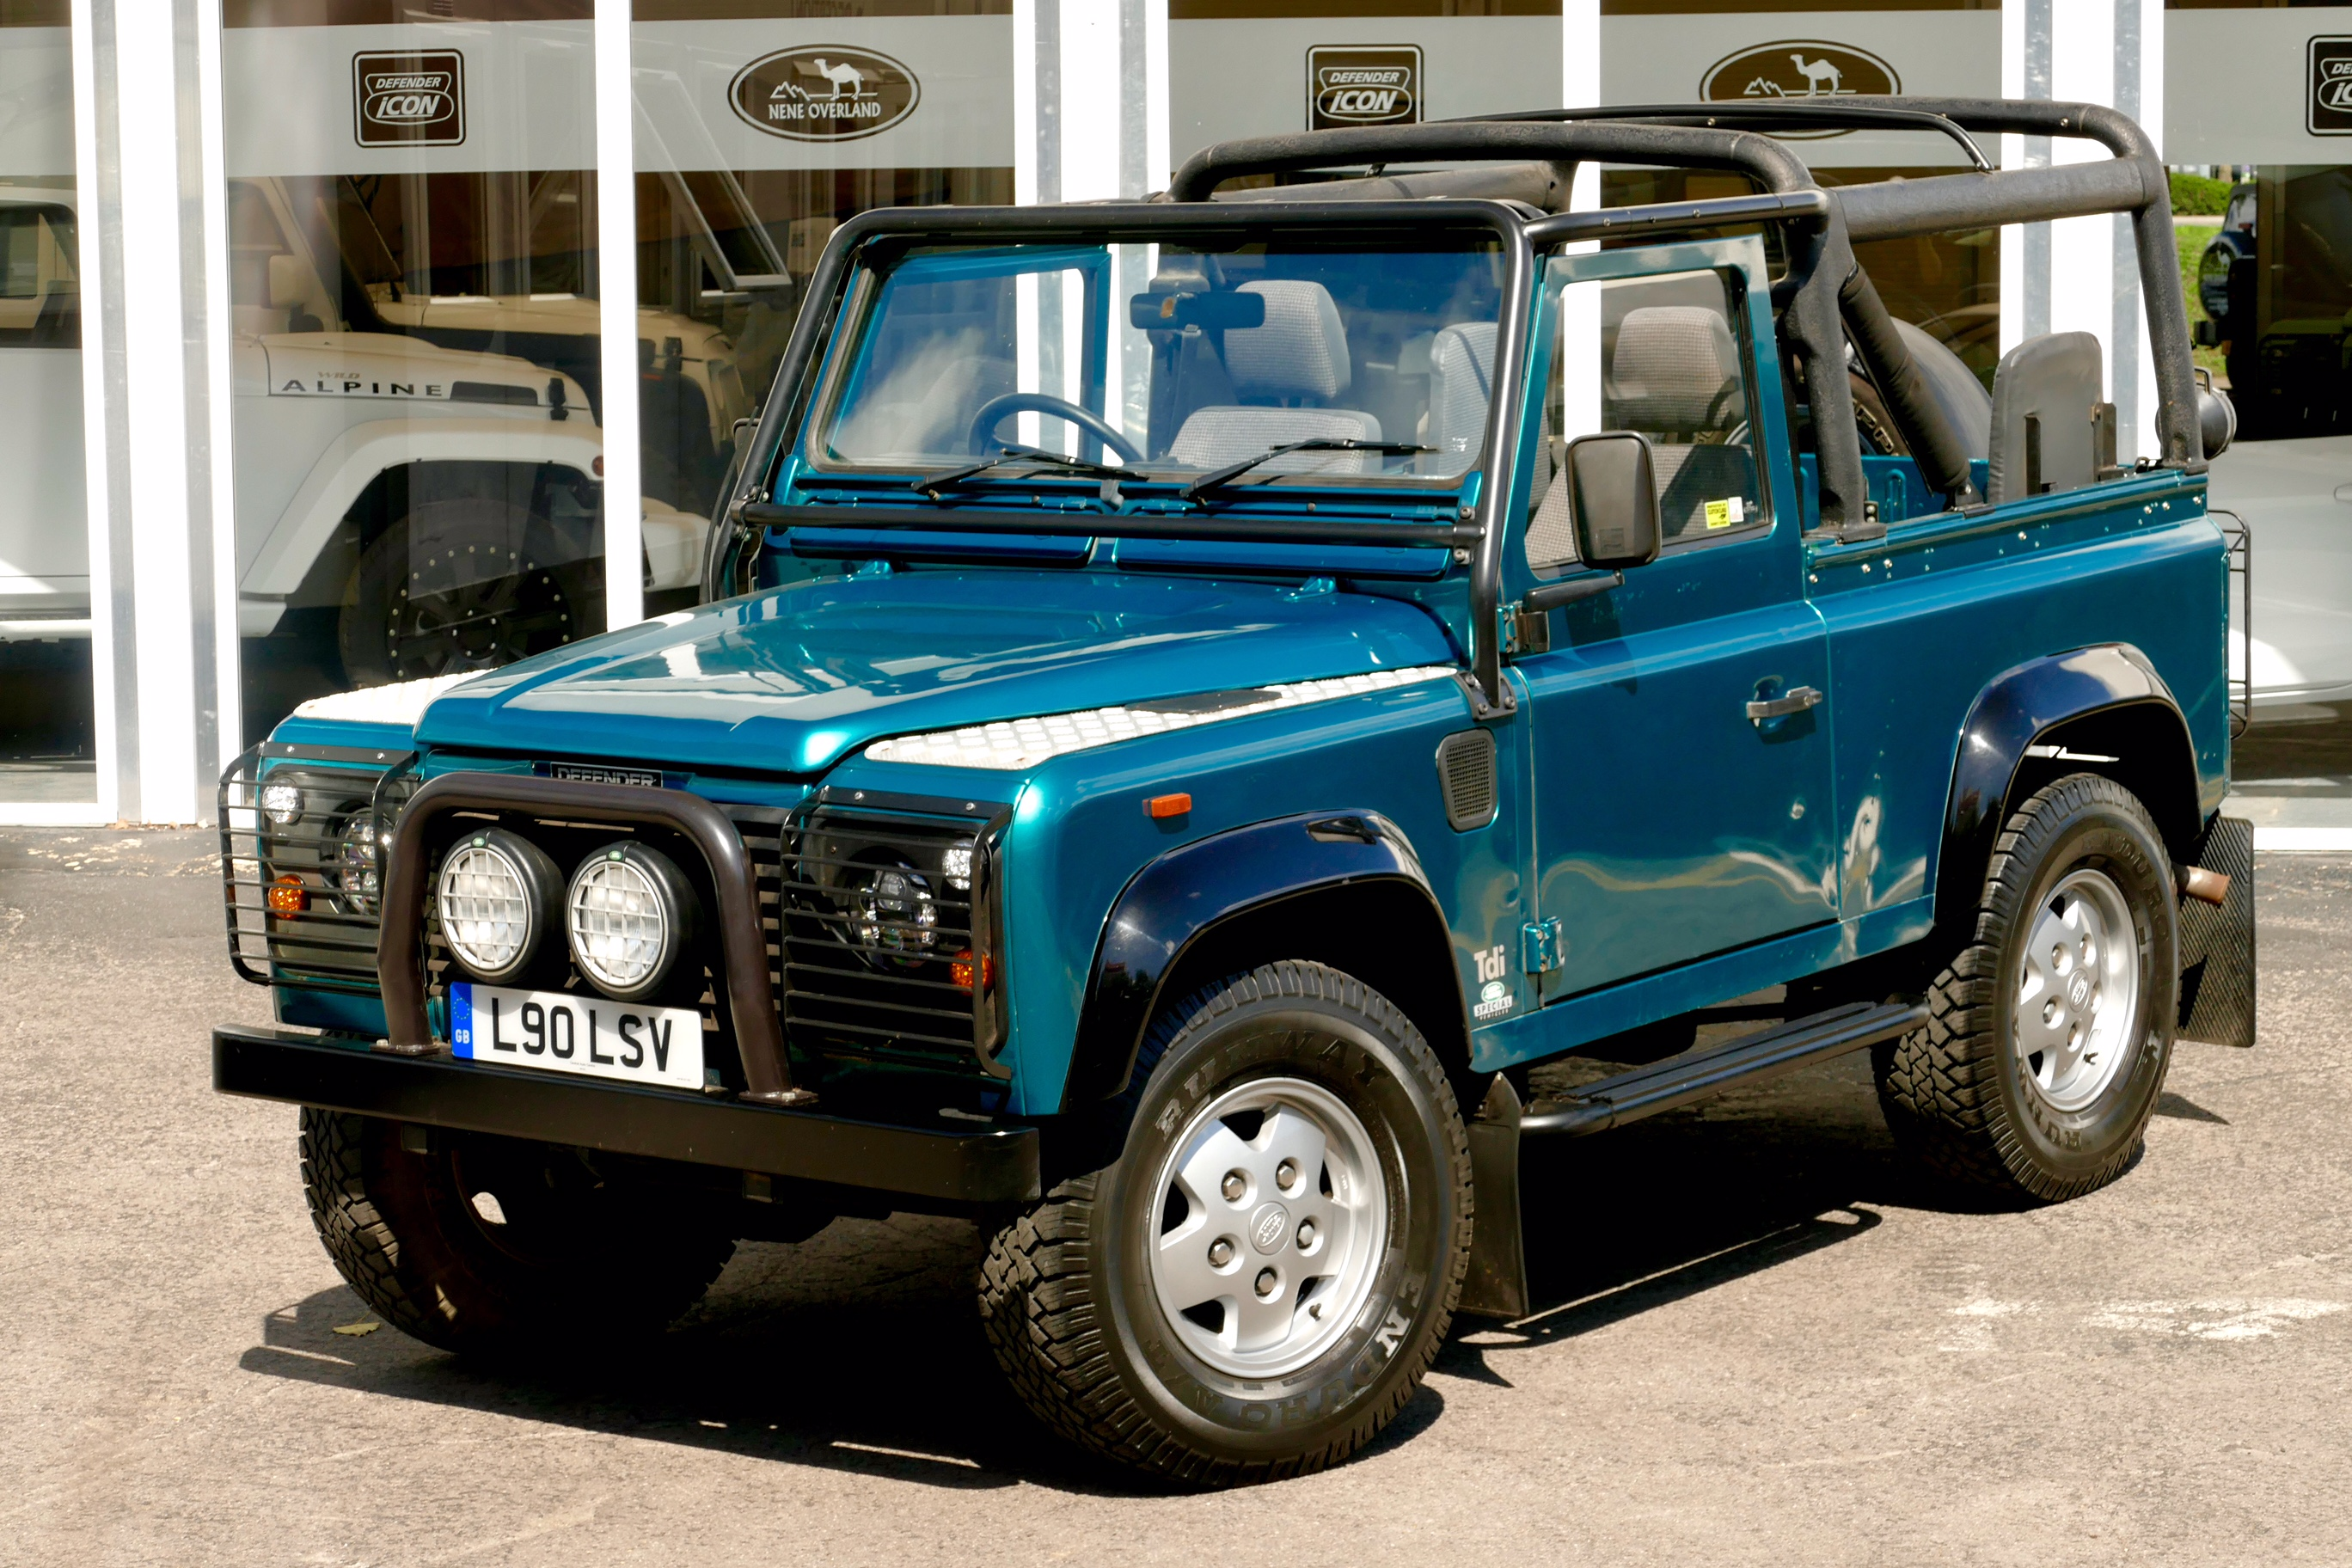 rovers watson used pin pinterest lease rover summer for land topless landrover